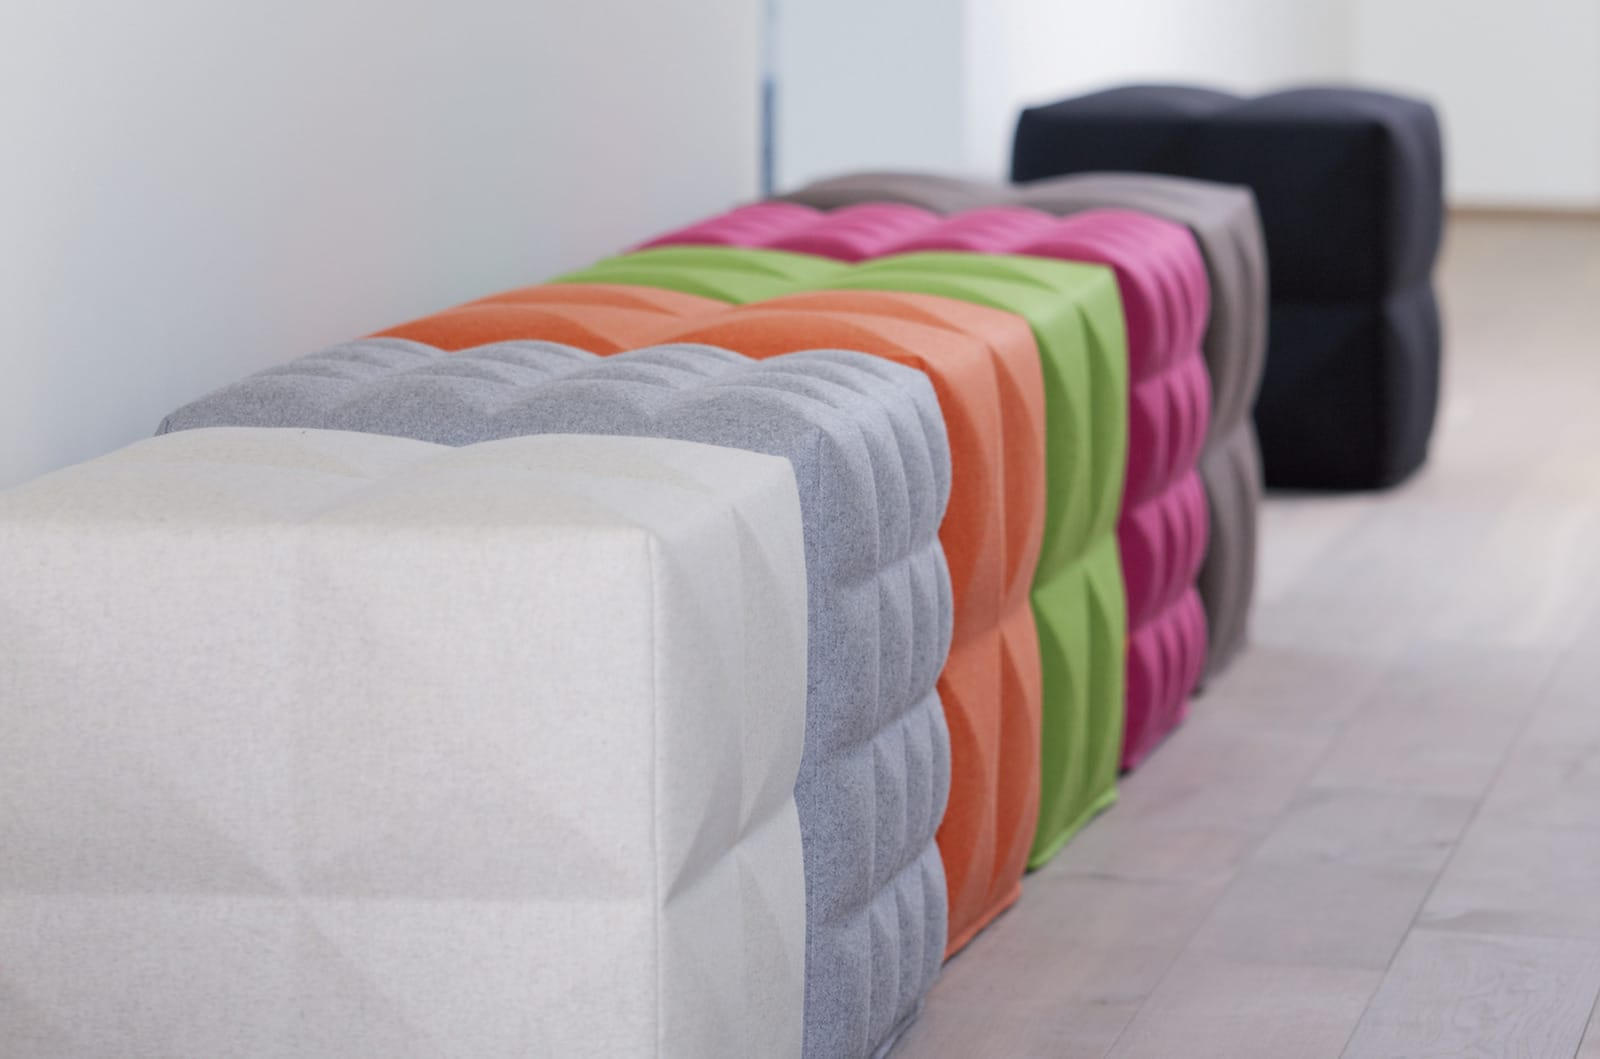 Seating furniture for the acoustic optimisation of rooms